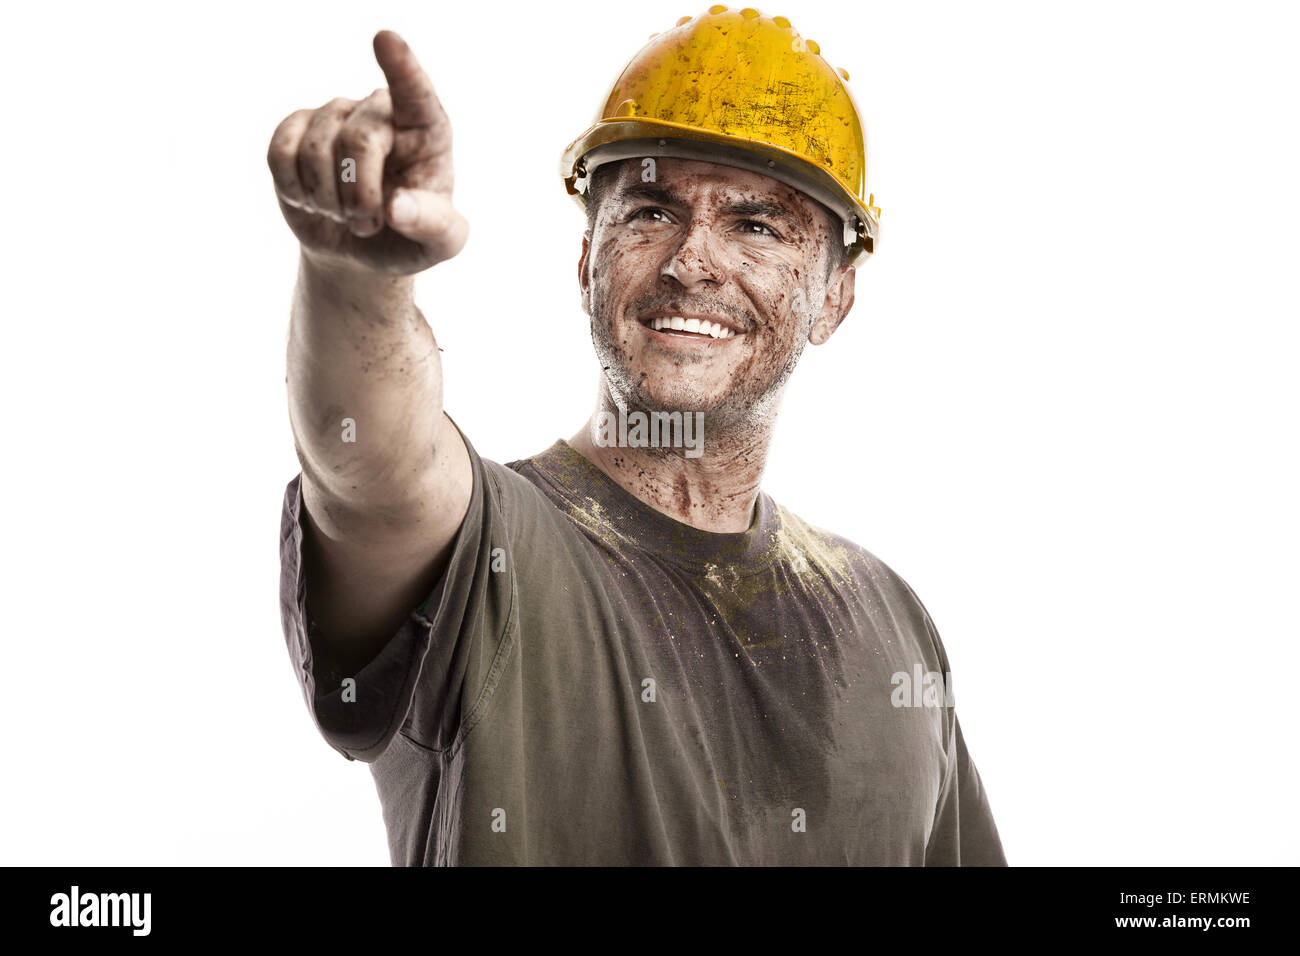 pointing young dirty Worker Man With Hard Hat helmet isolated on White Background - Stock Image